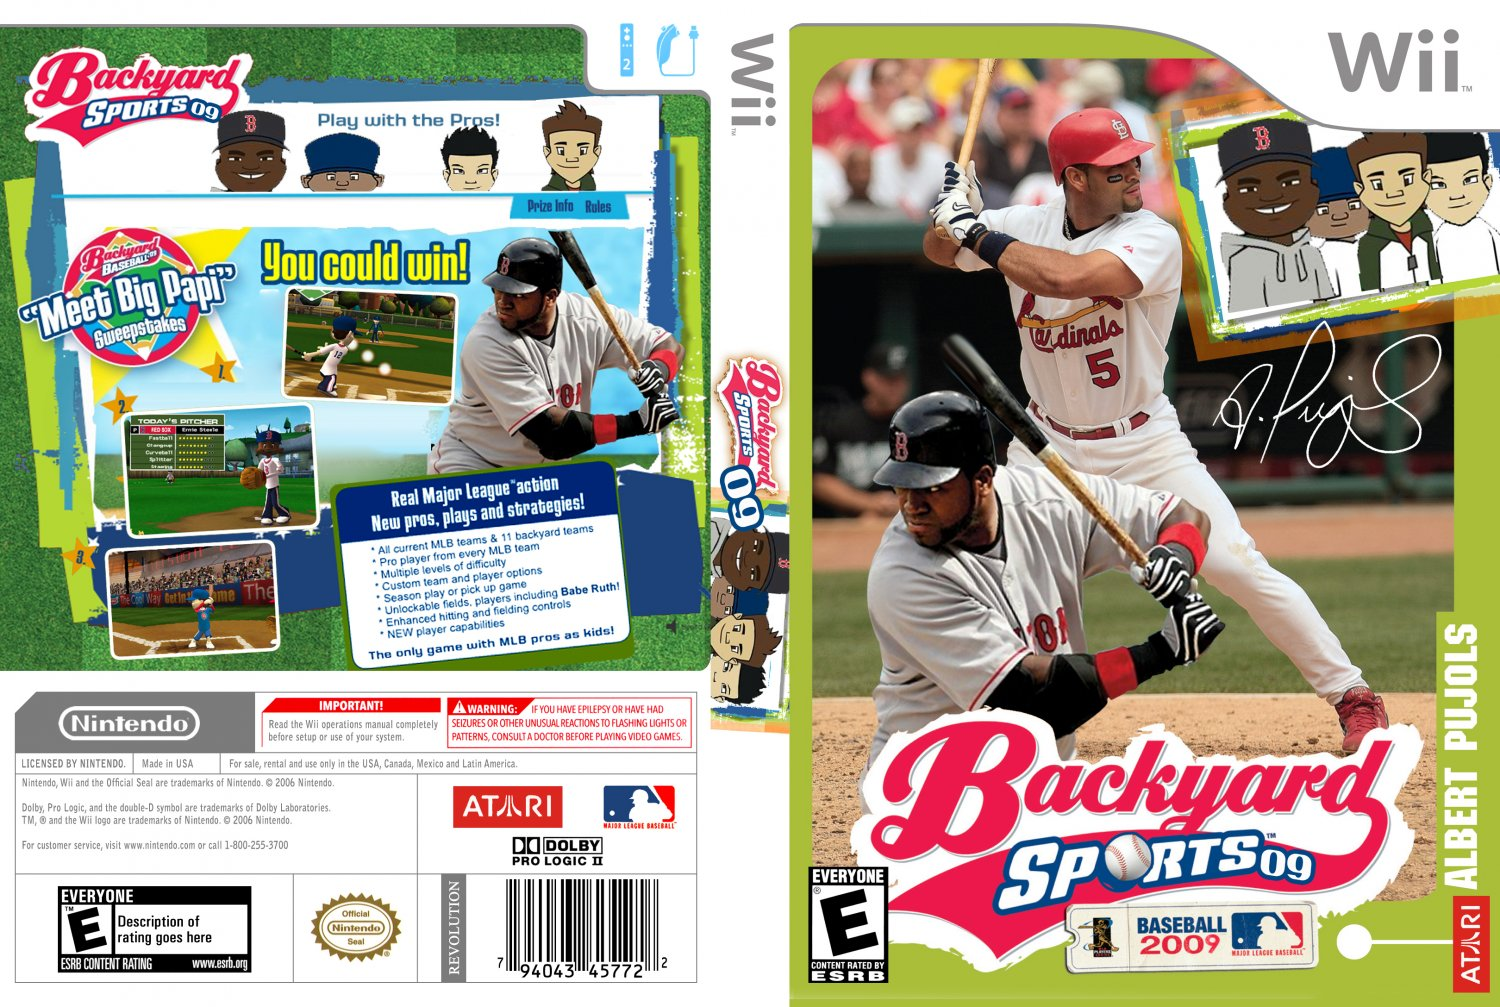 backyard baseball 09 usa wii full game free pc download play